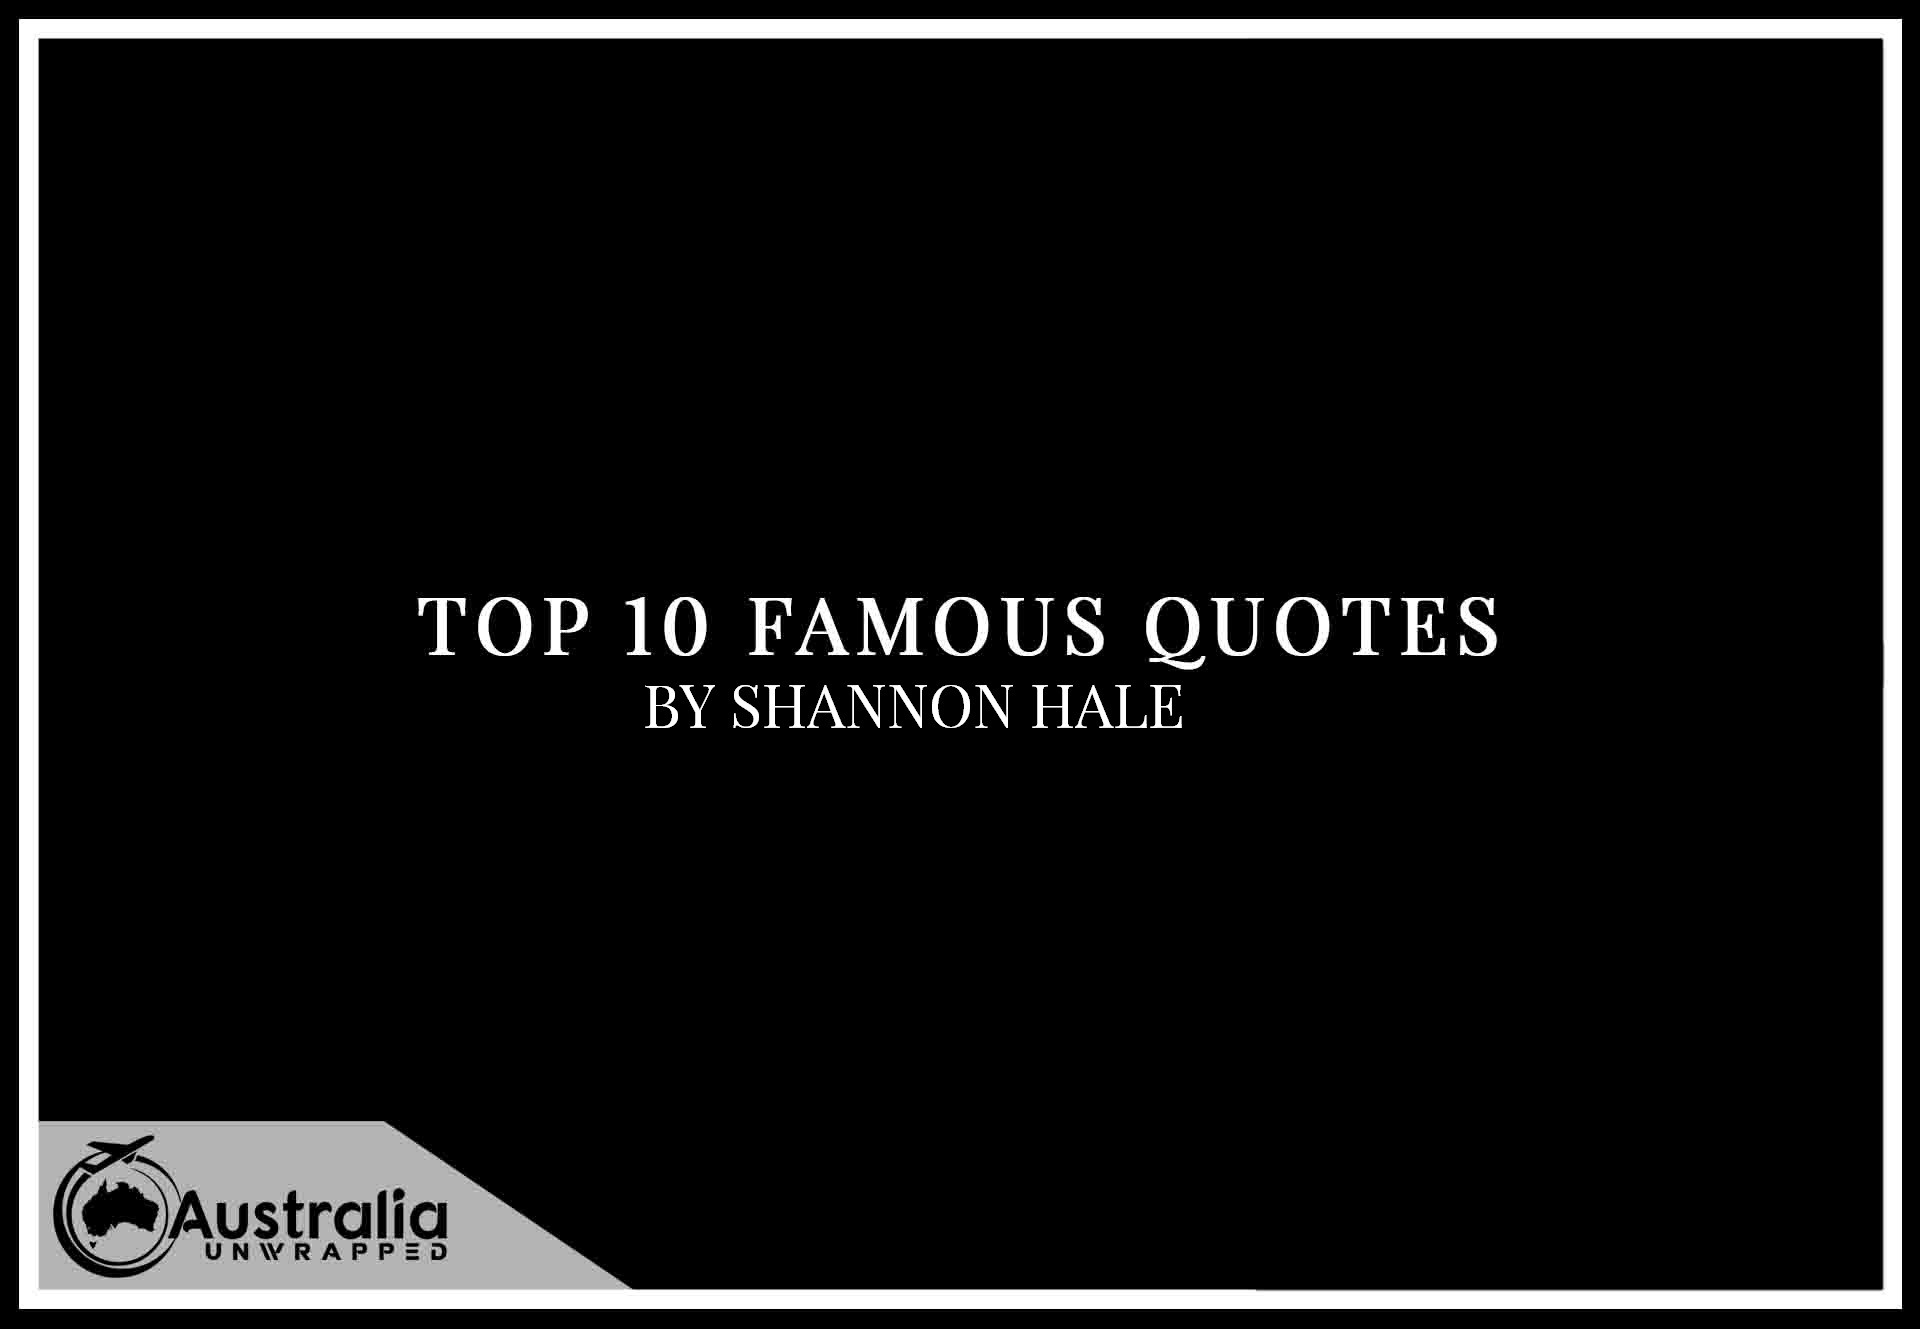 Top 10 Famous Quotes by Author Shannon Hale